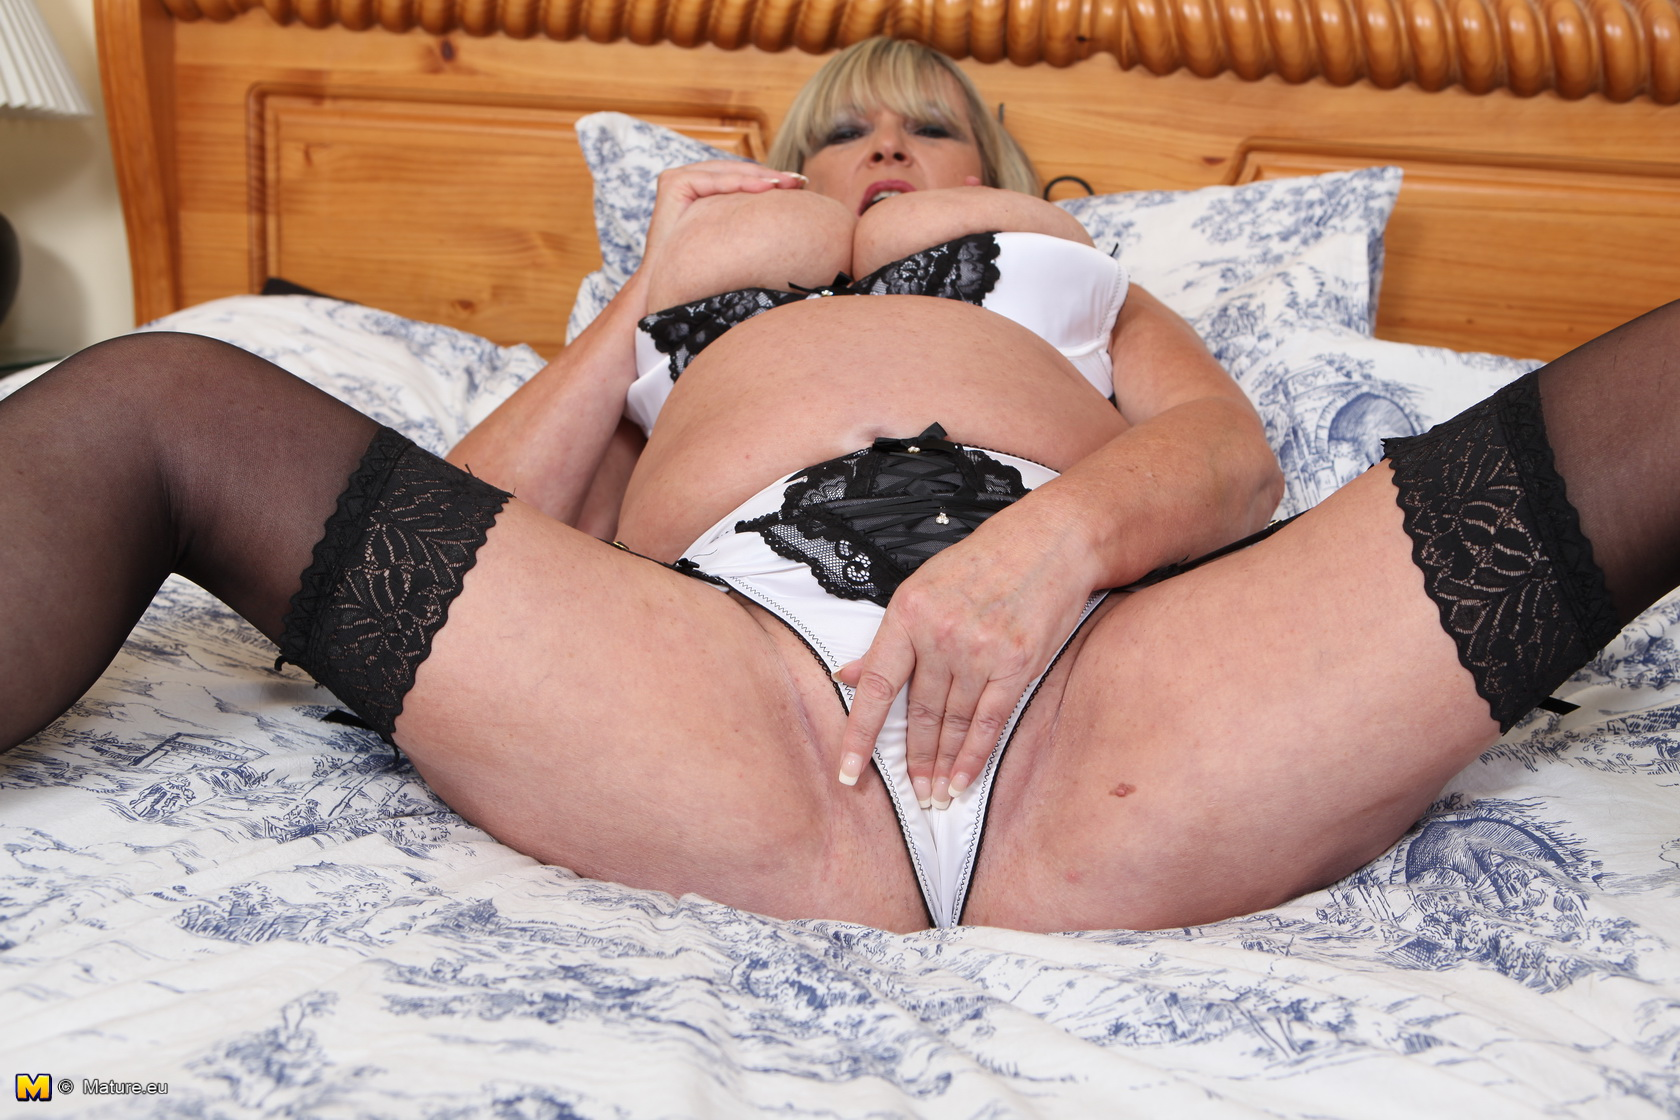 Naughty british mature lady and granny getting wet and wild 8